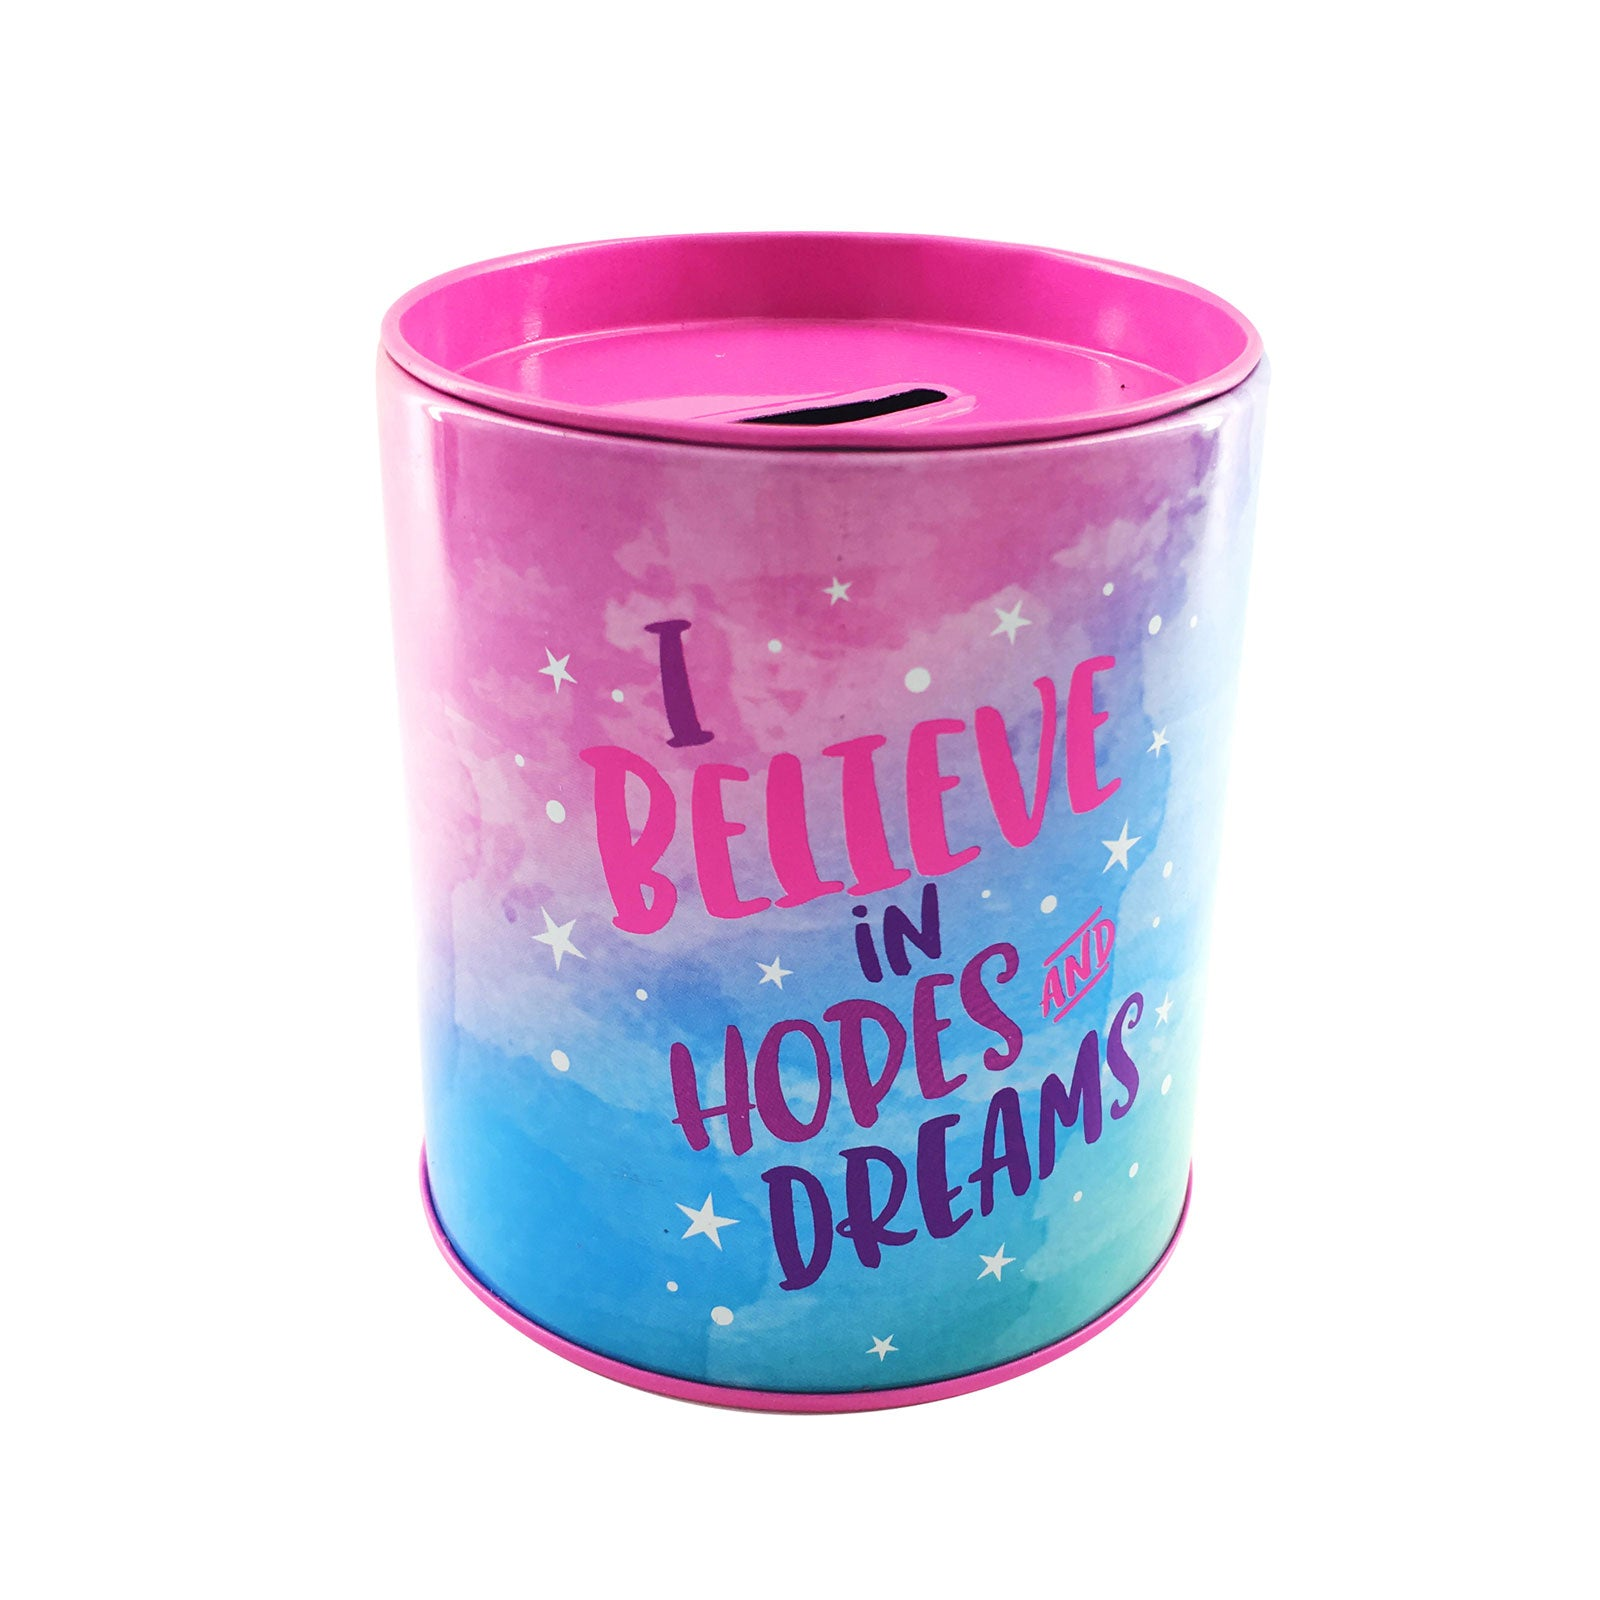 Savings Coin Tins - Believe in Hopes and Dreams